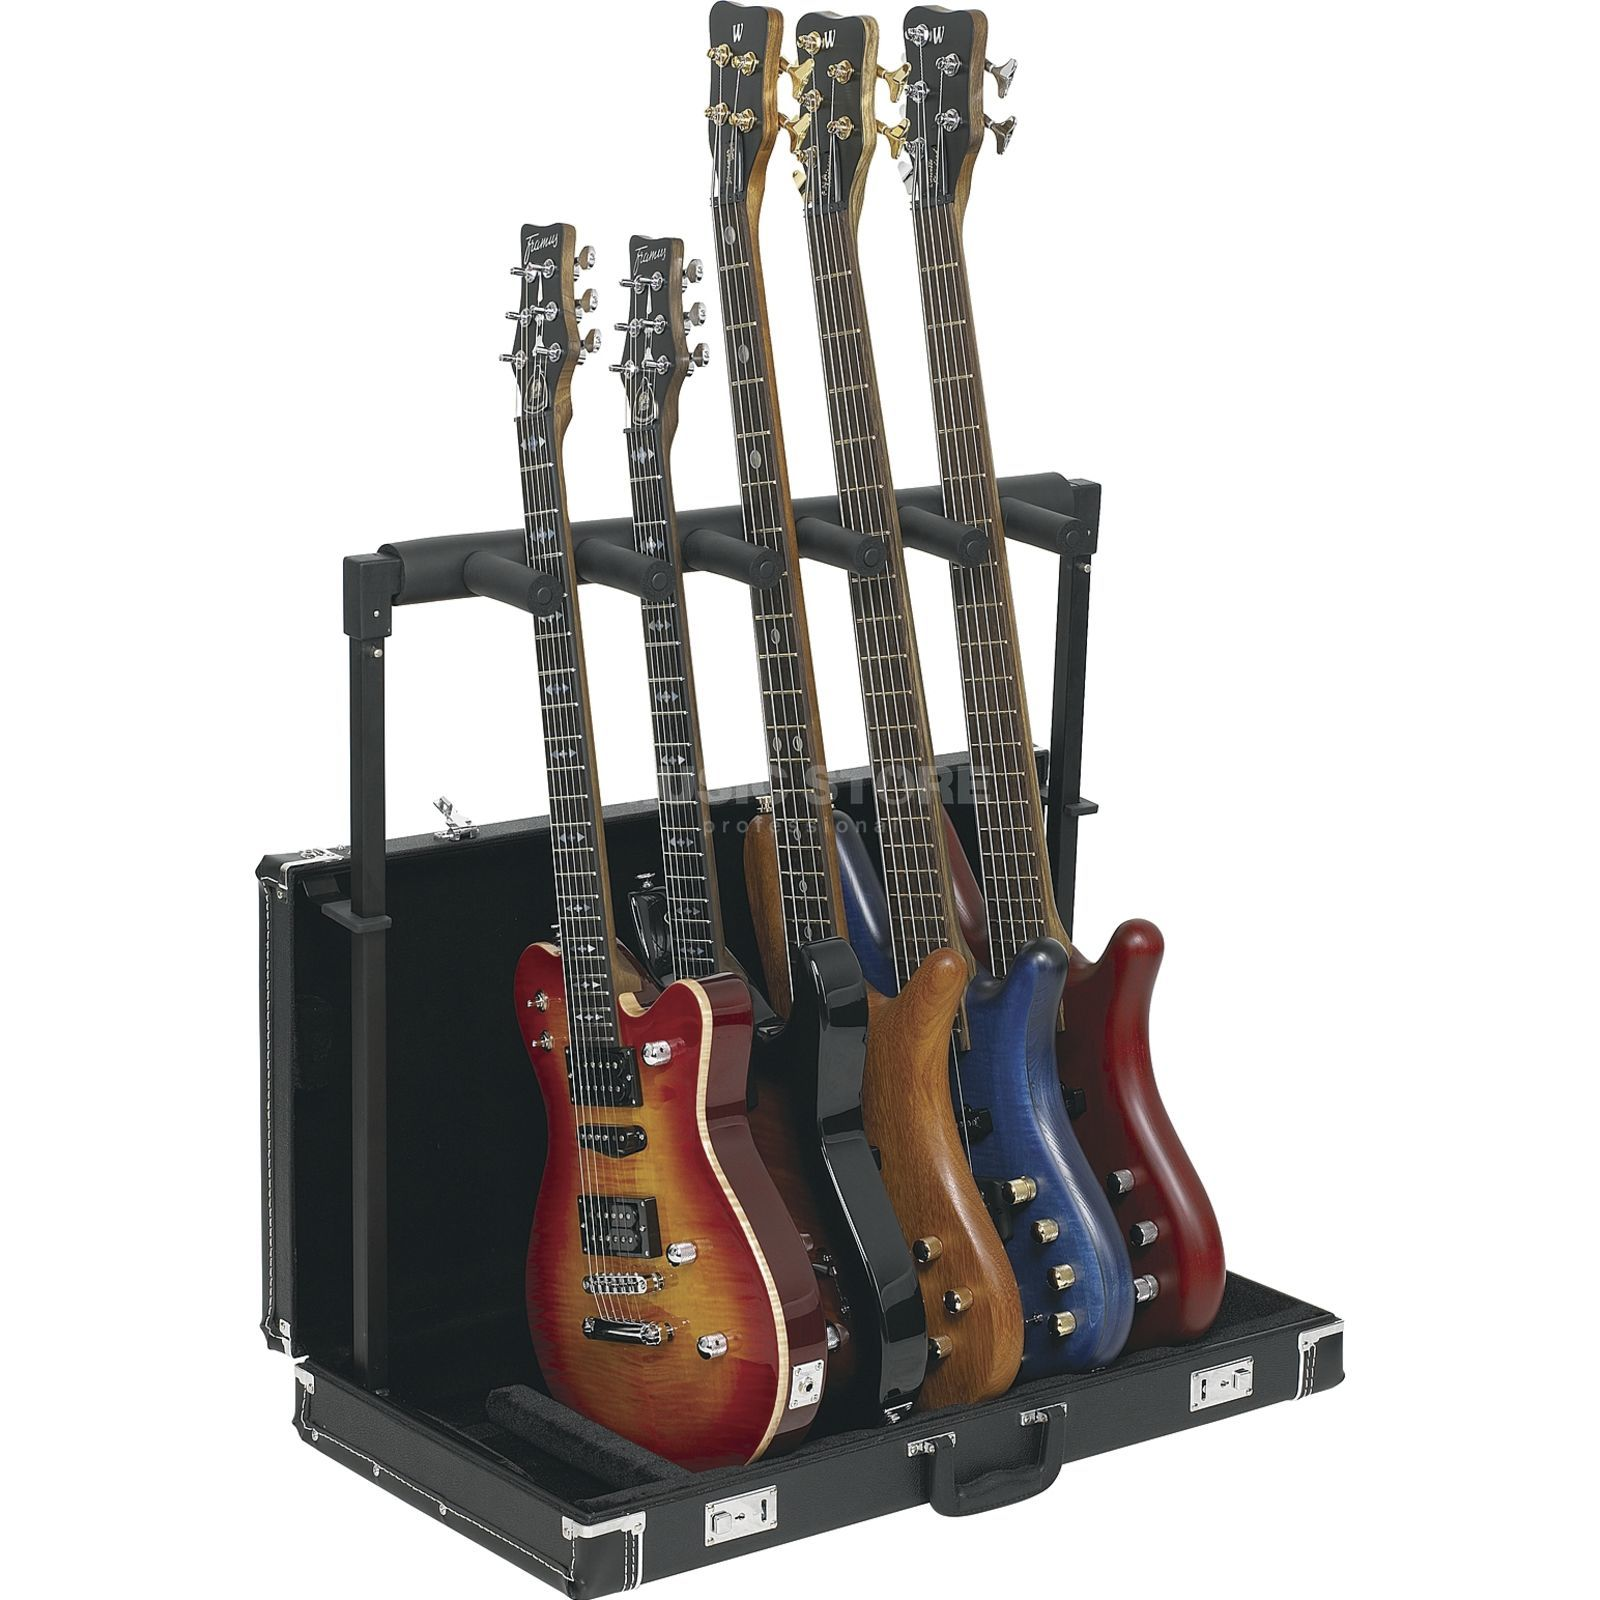 Rockstand RS20850B/2 5-Way Woodcase Guitar Stand Produktbild